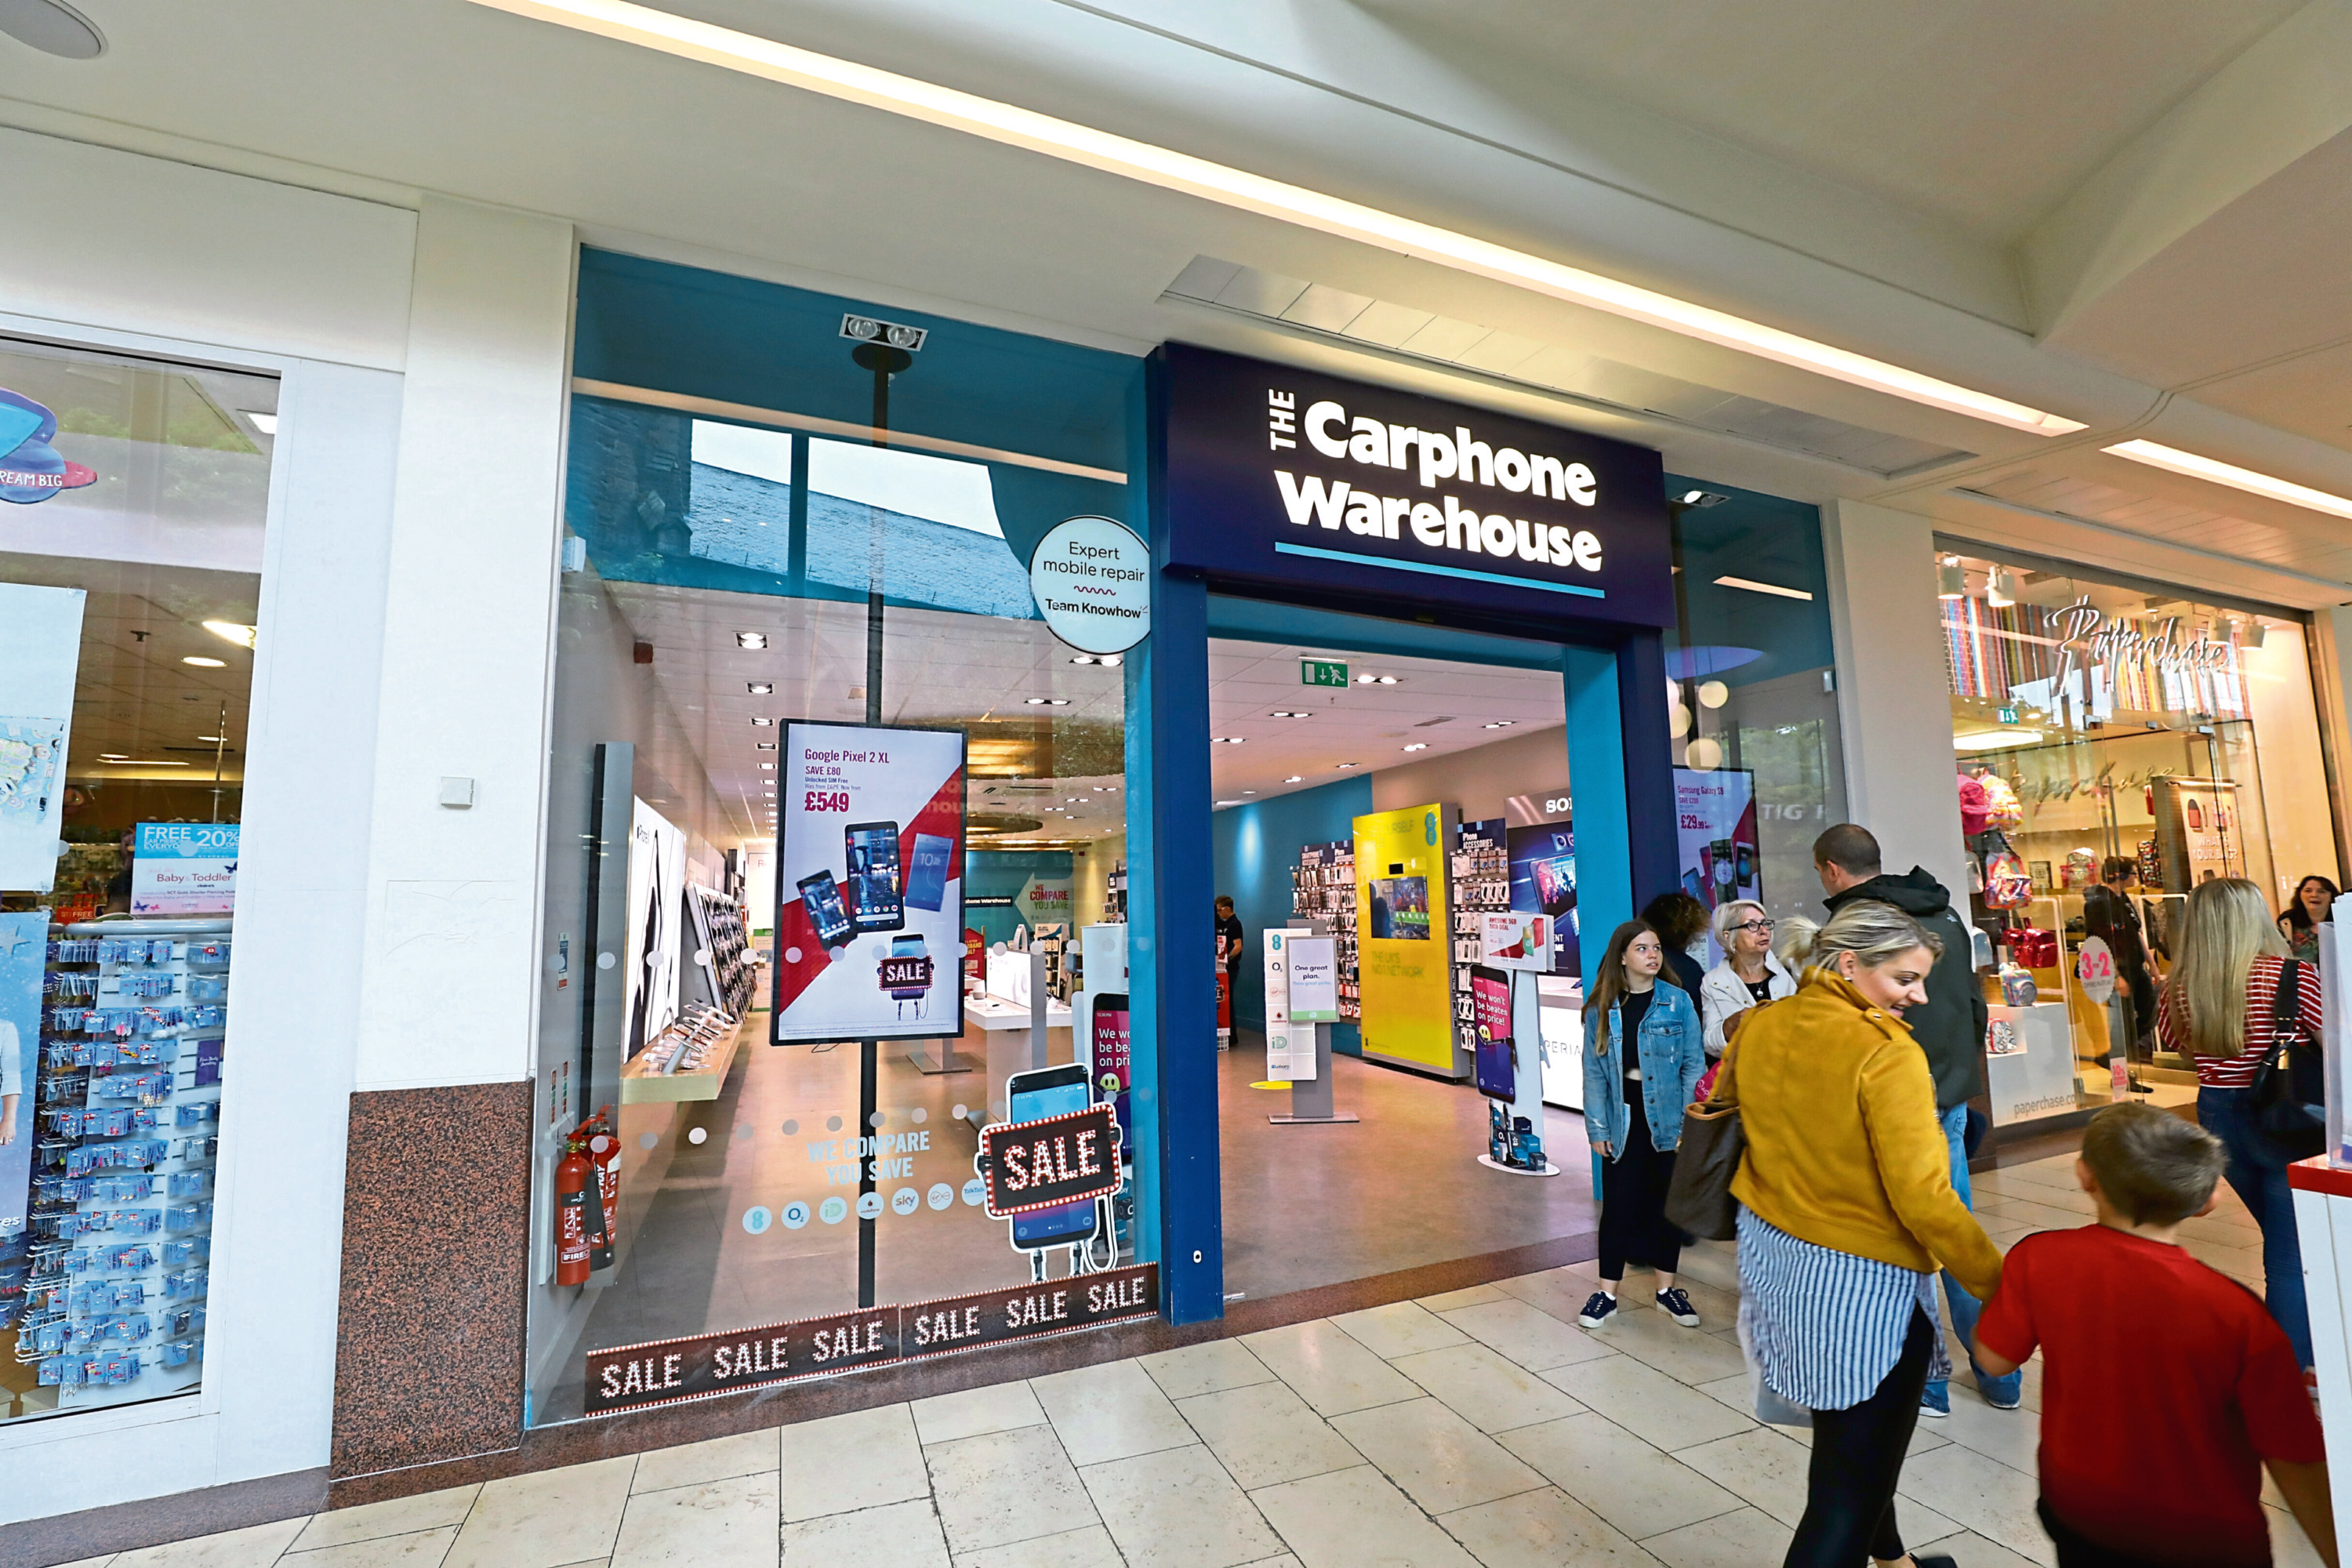 Carphone Warehouse in the Overgate Centre